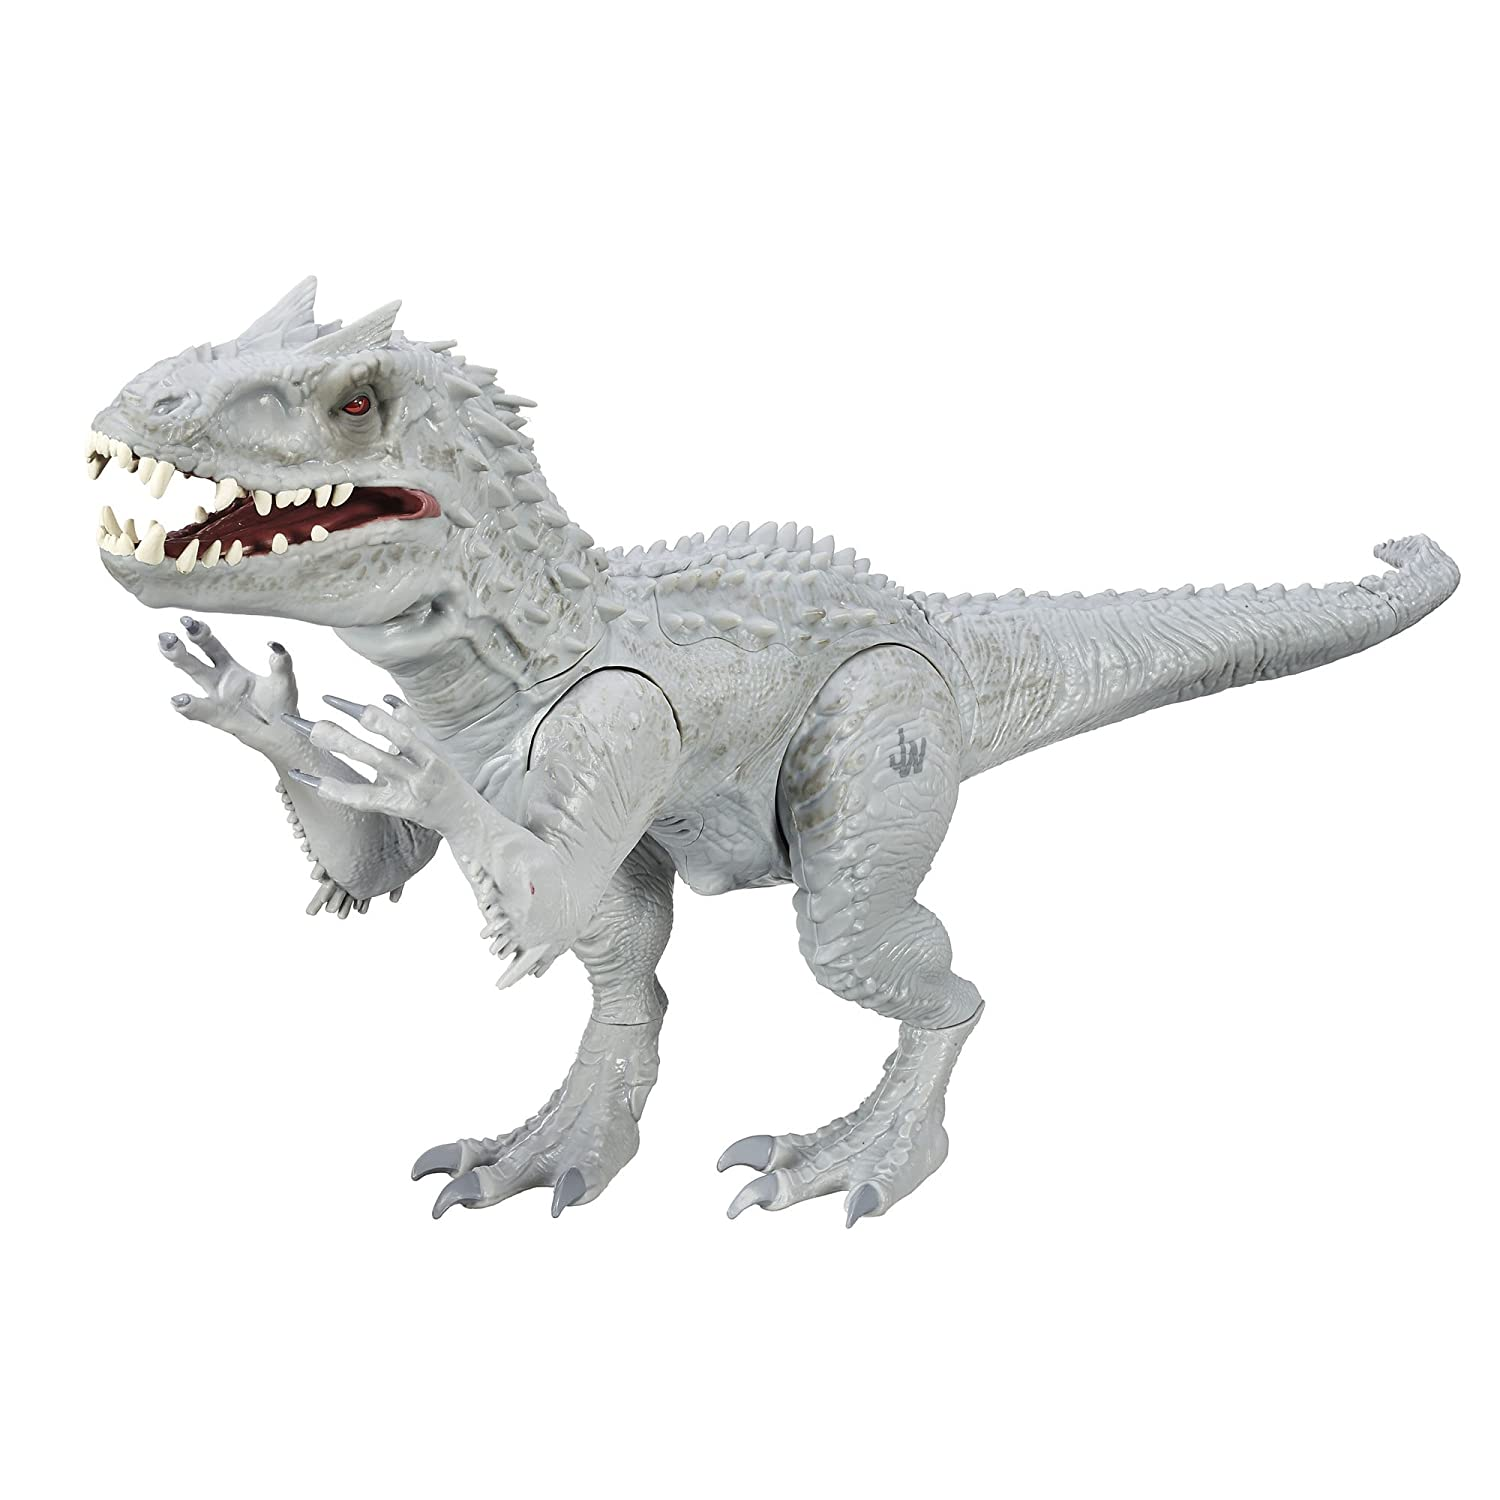 amazoncom jurassic world chomping indominus rex figurediscontinued by manufacturer toys games